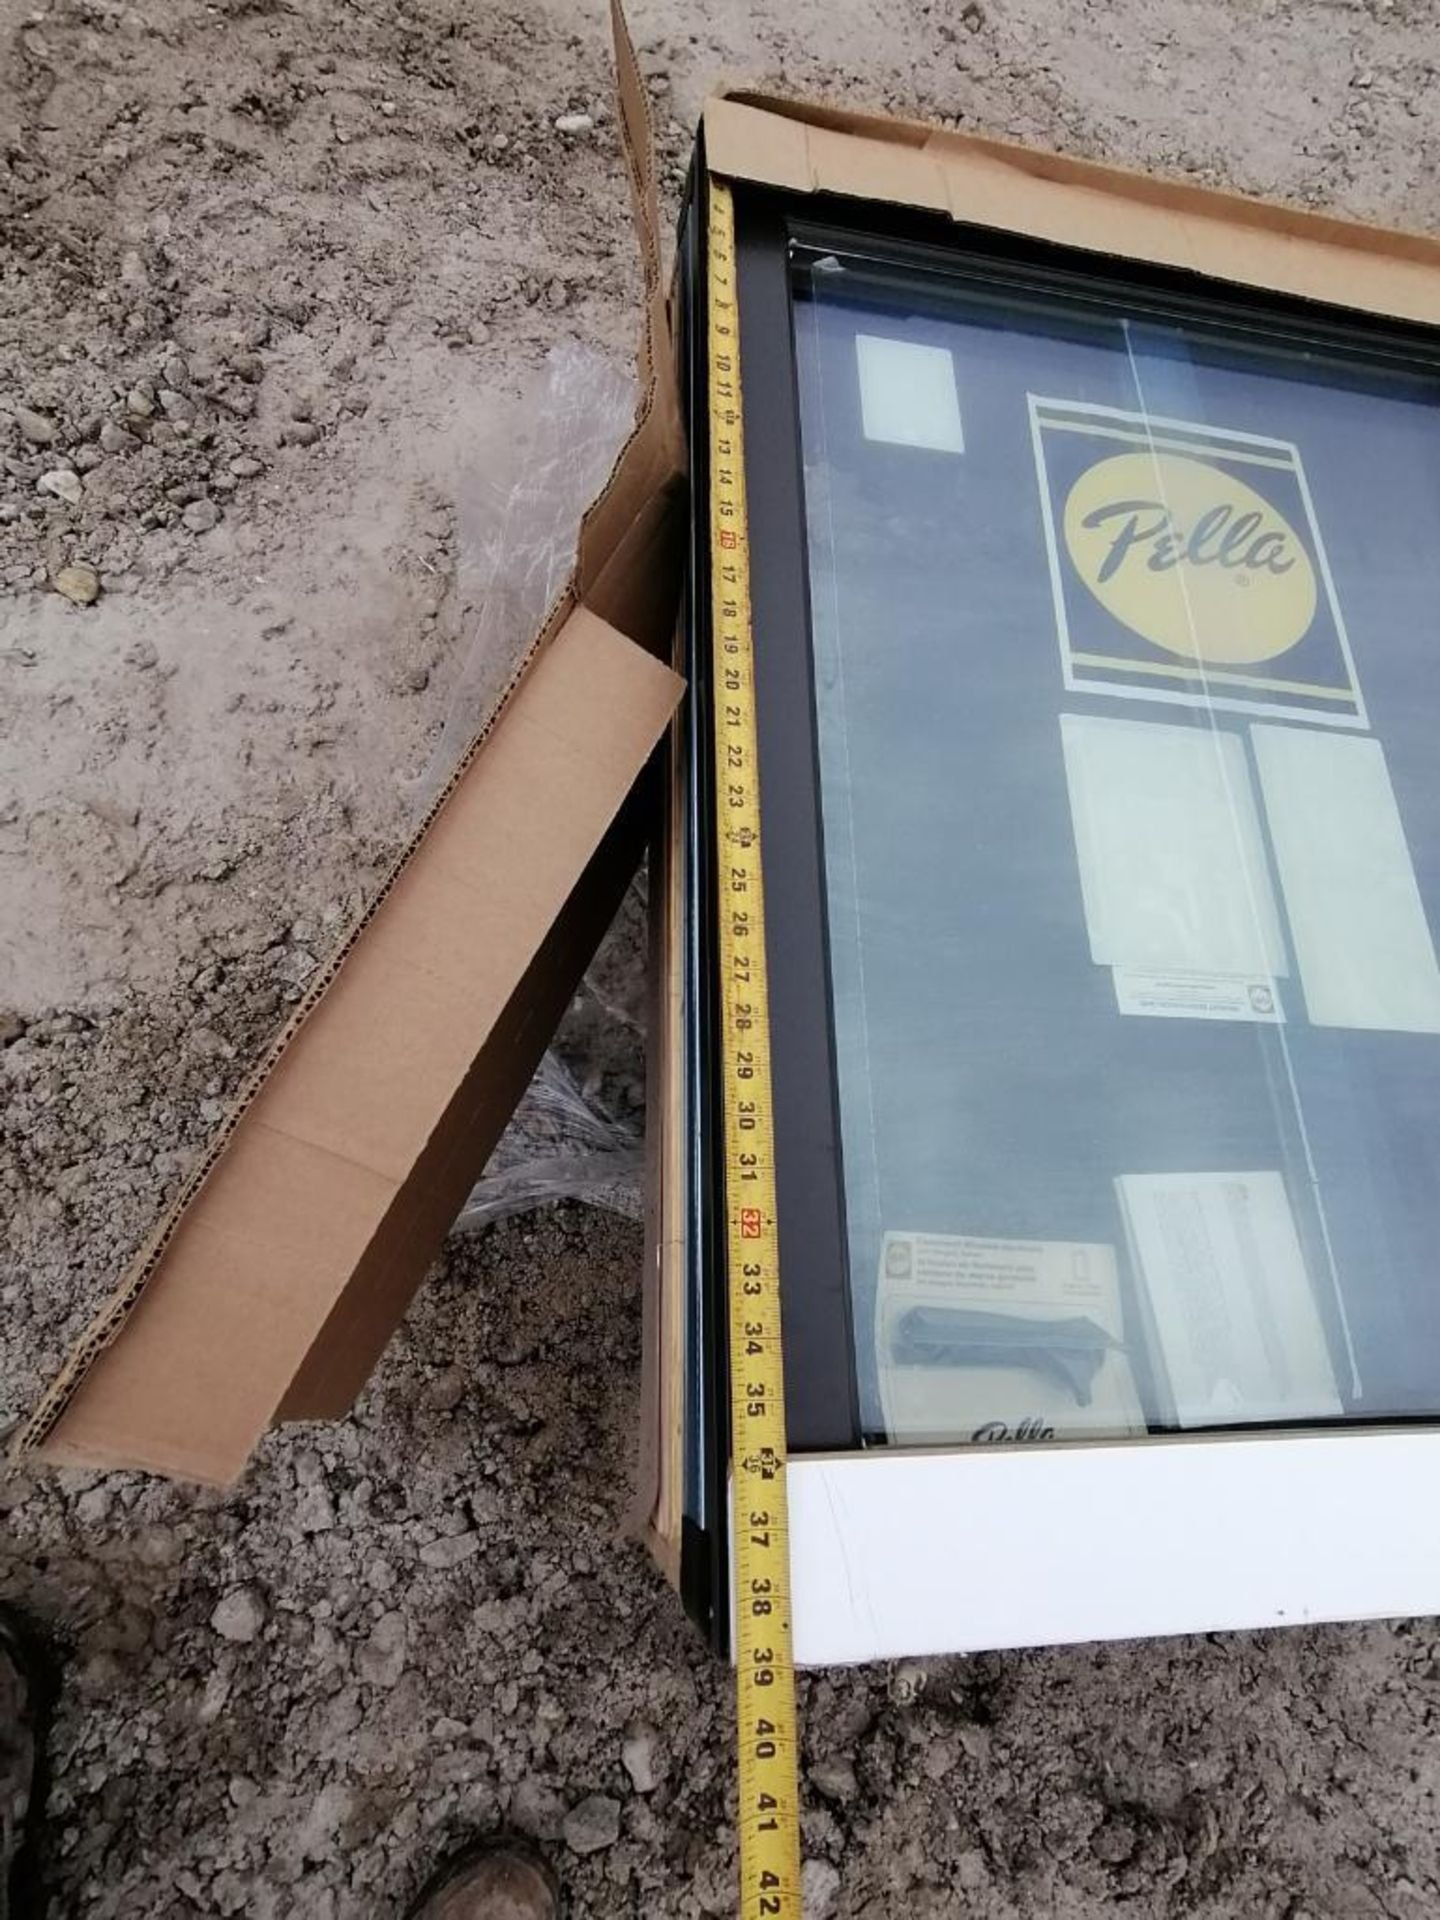 """(1) Pella 39"""" x 99"""" x 10"""" Window with Frames. Located in Waukegan, IL. - Image 4 of 10"""